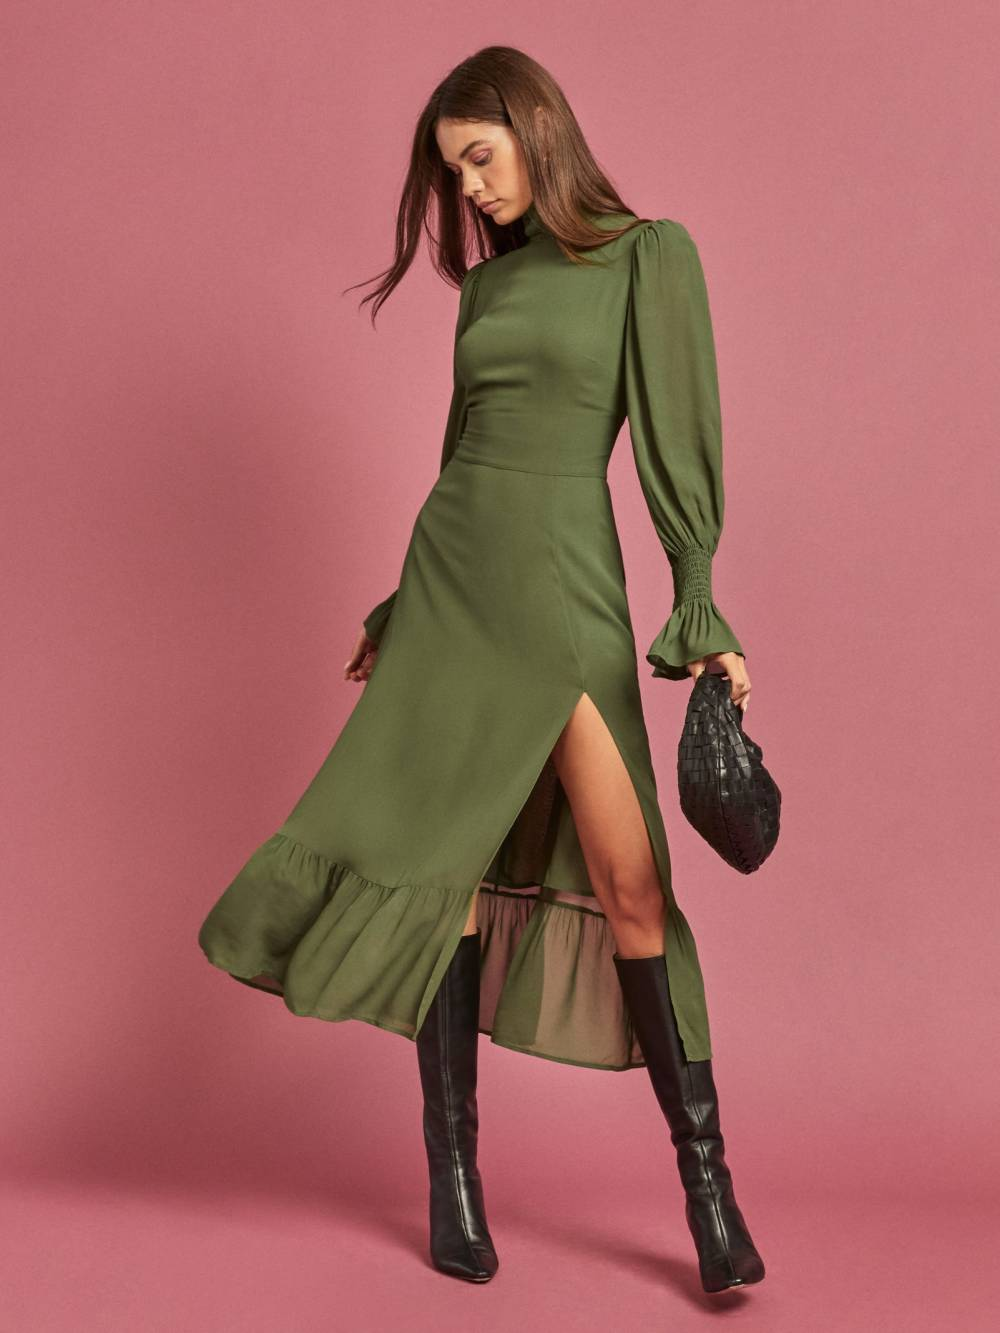 reformation dresses triangle body shapes